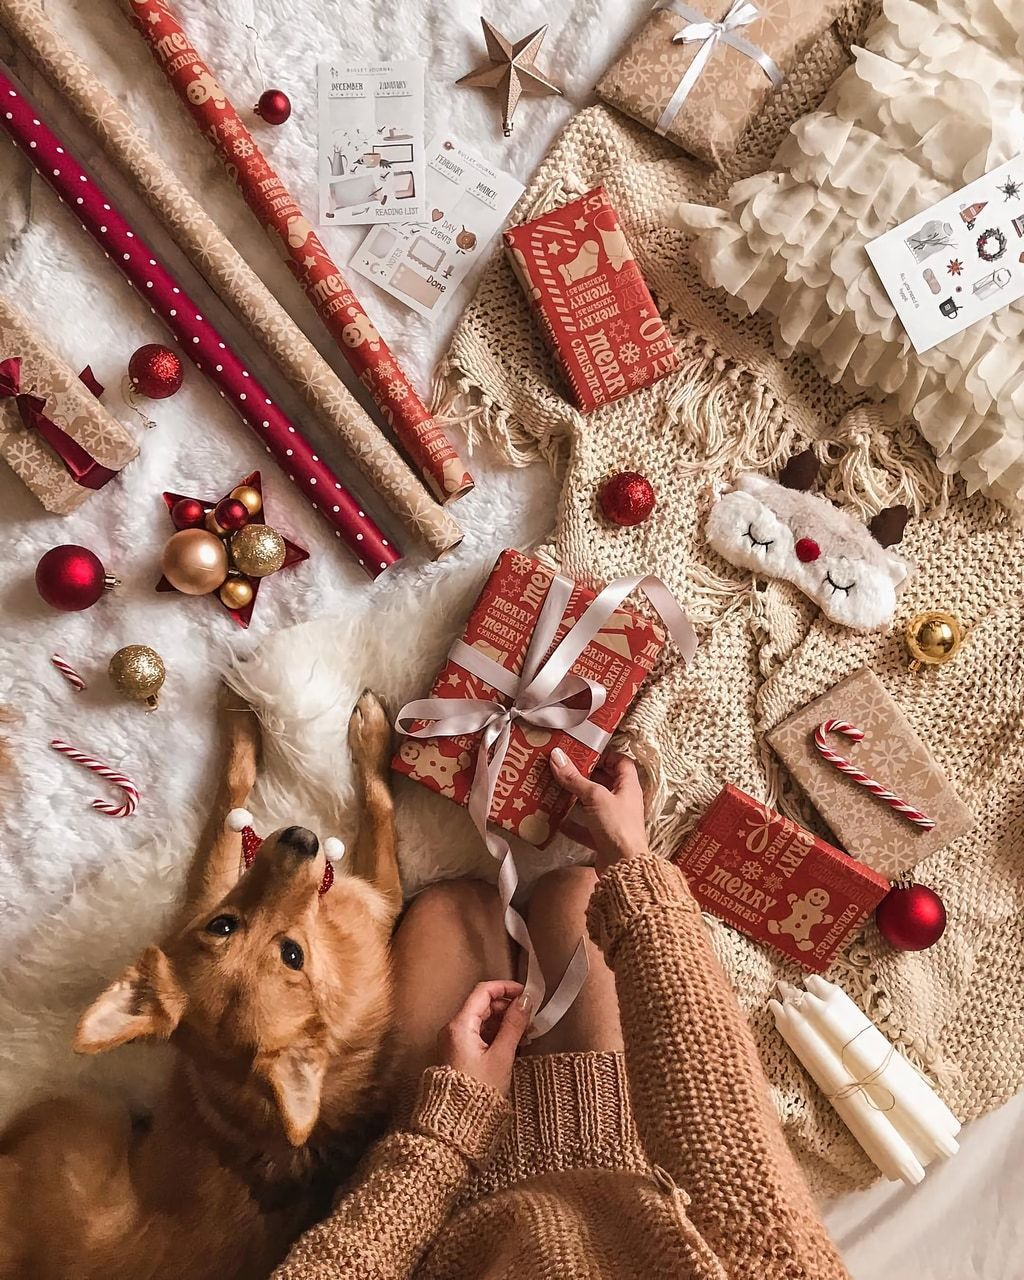 Christian Little Christmas 2020 h o l l a in 2020 | Christmas love, Christian christmas, Merry